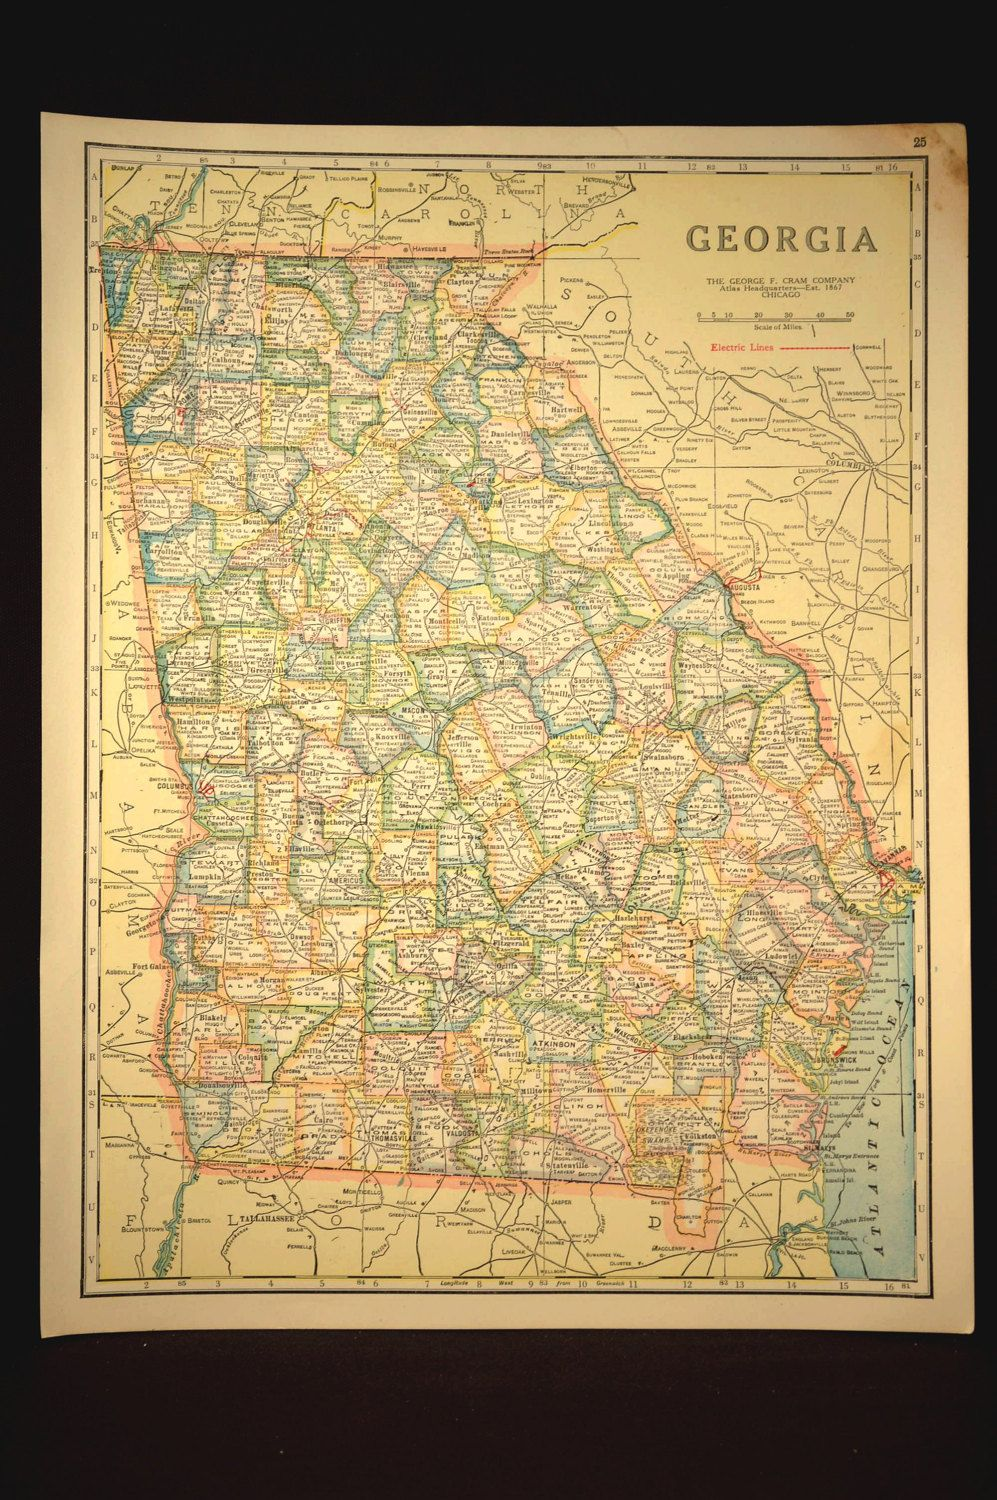 TWO SIDED Antique Road Map Georgia Map Original Highway Roadway - Antique road maps